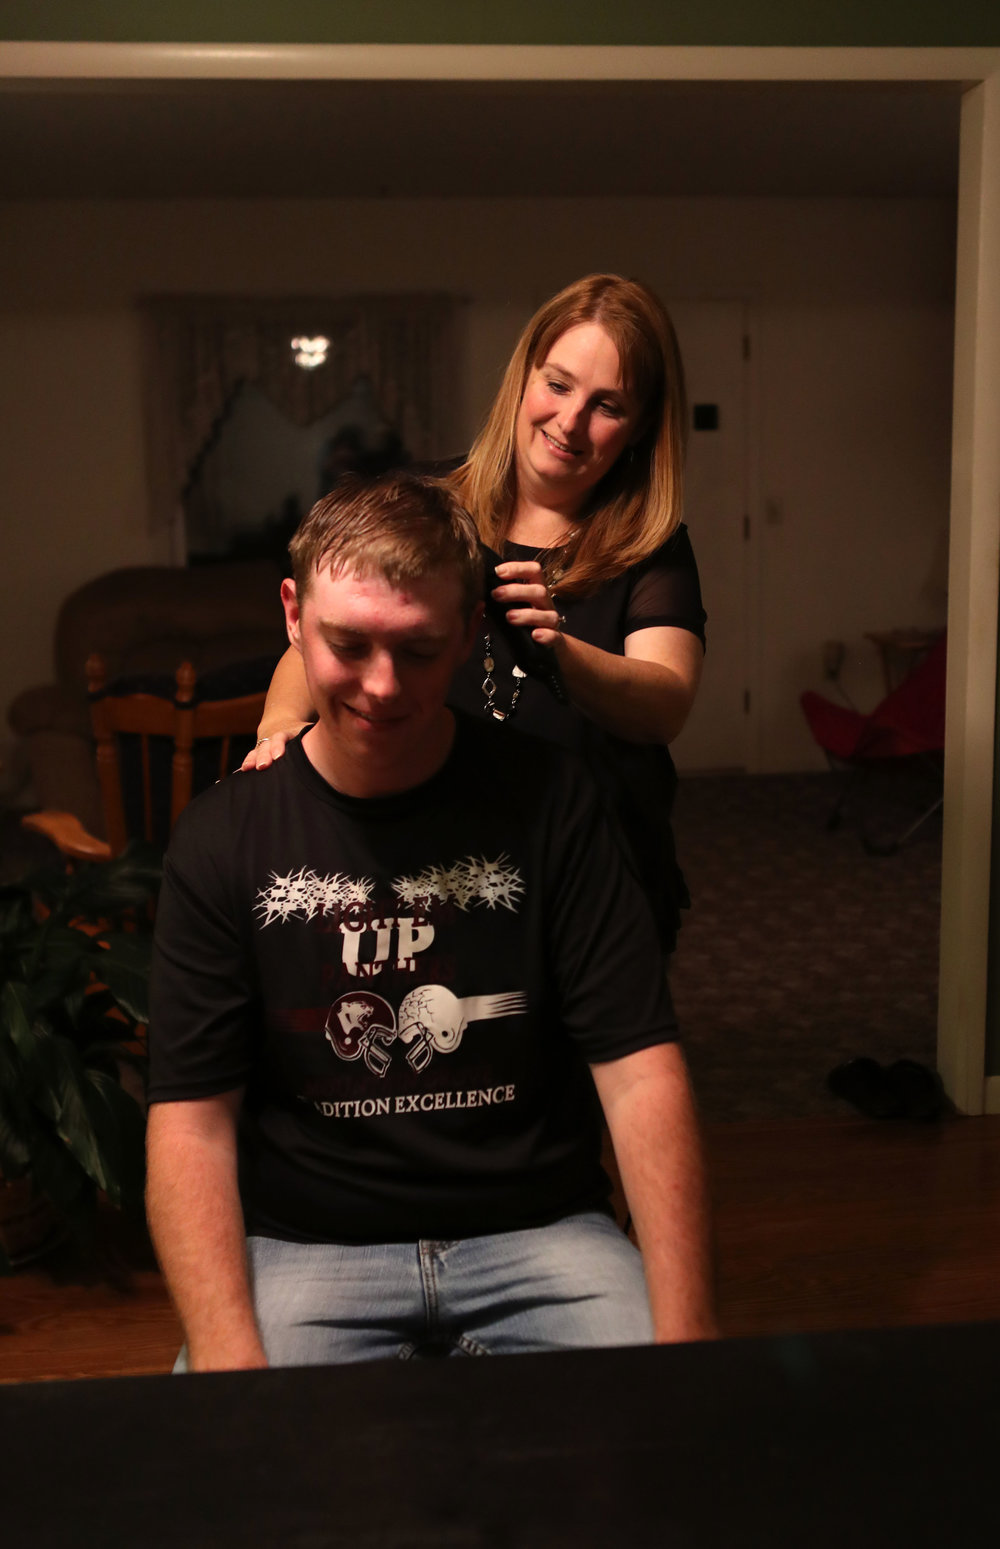 """Home haircuts by his mom Cheryl have been the rule for Elias. He has had only one haircut outside of home his entire life. """"We need to make this one last,"""" Cheryl joked."""